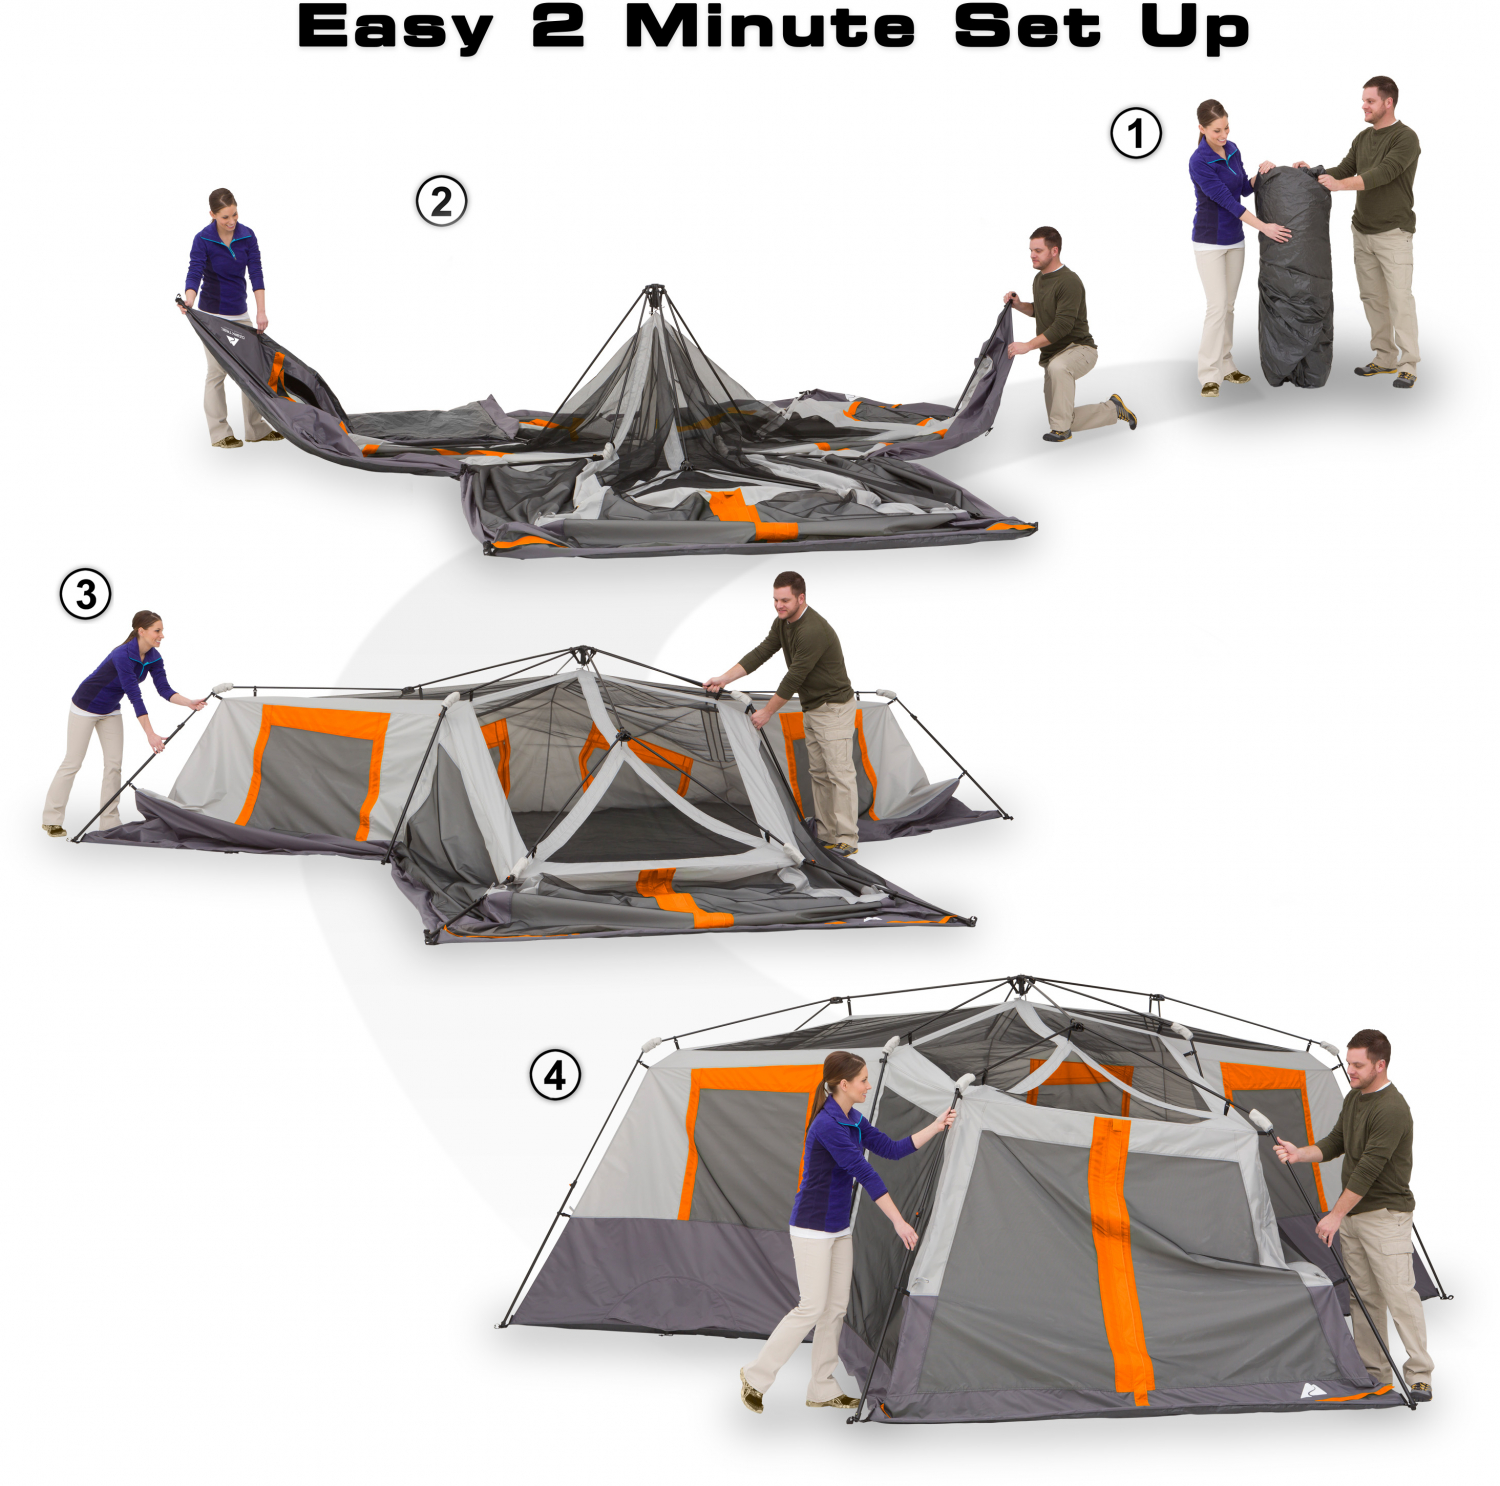 12 Person Instant Cabin 20 X 18 Tent 3-Room Camping